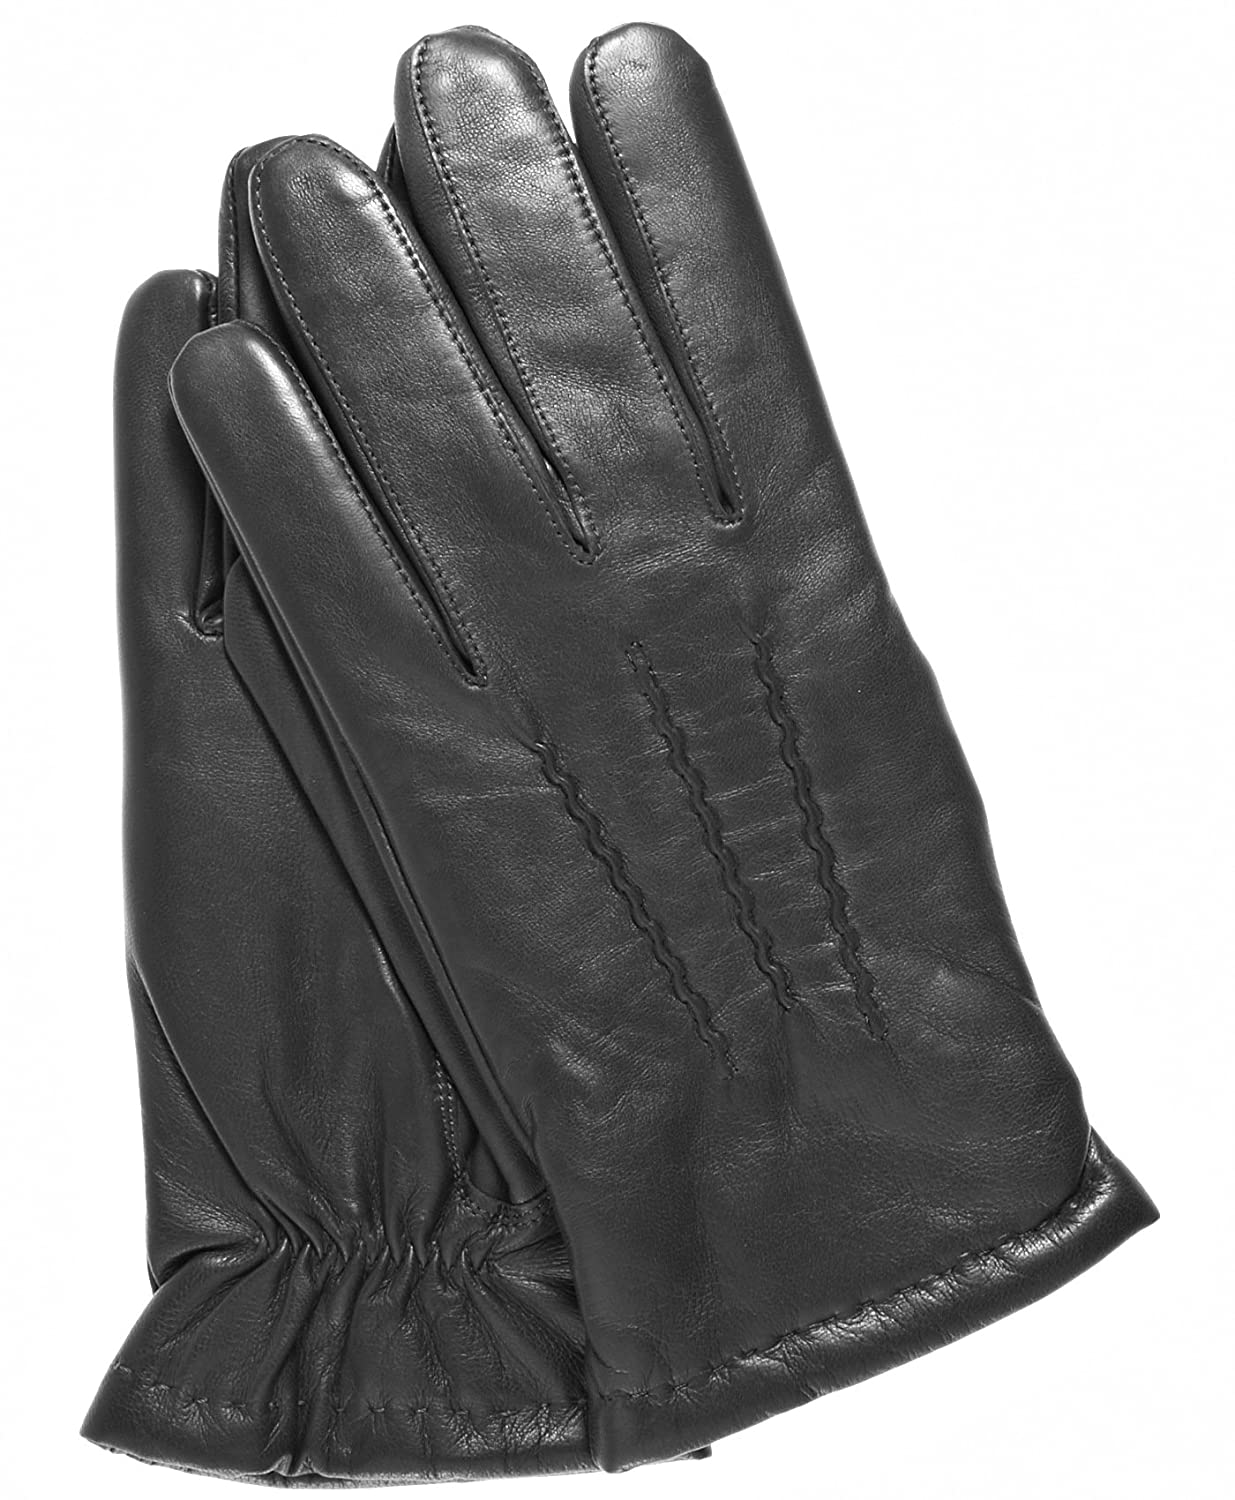 bdc82b623fd66 Fratelli Orsini Everyday Men's Italian Lambskin Cashmere Lined Winter Leather  Gloves at Amazon Men's Clothing store: Cold Weather Gloves